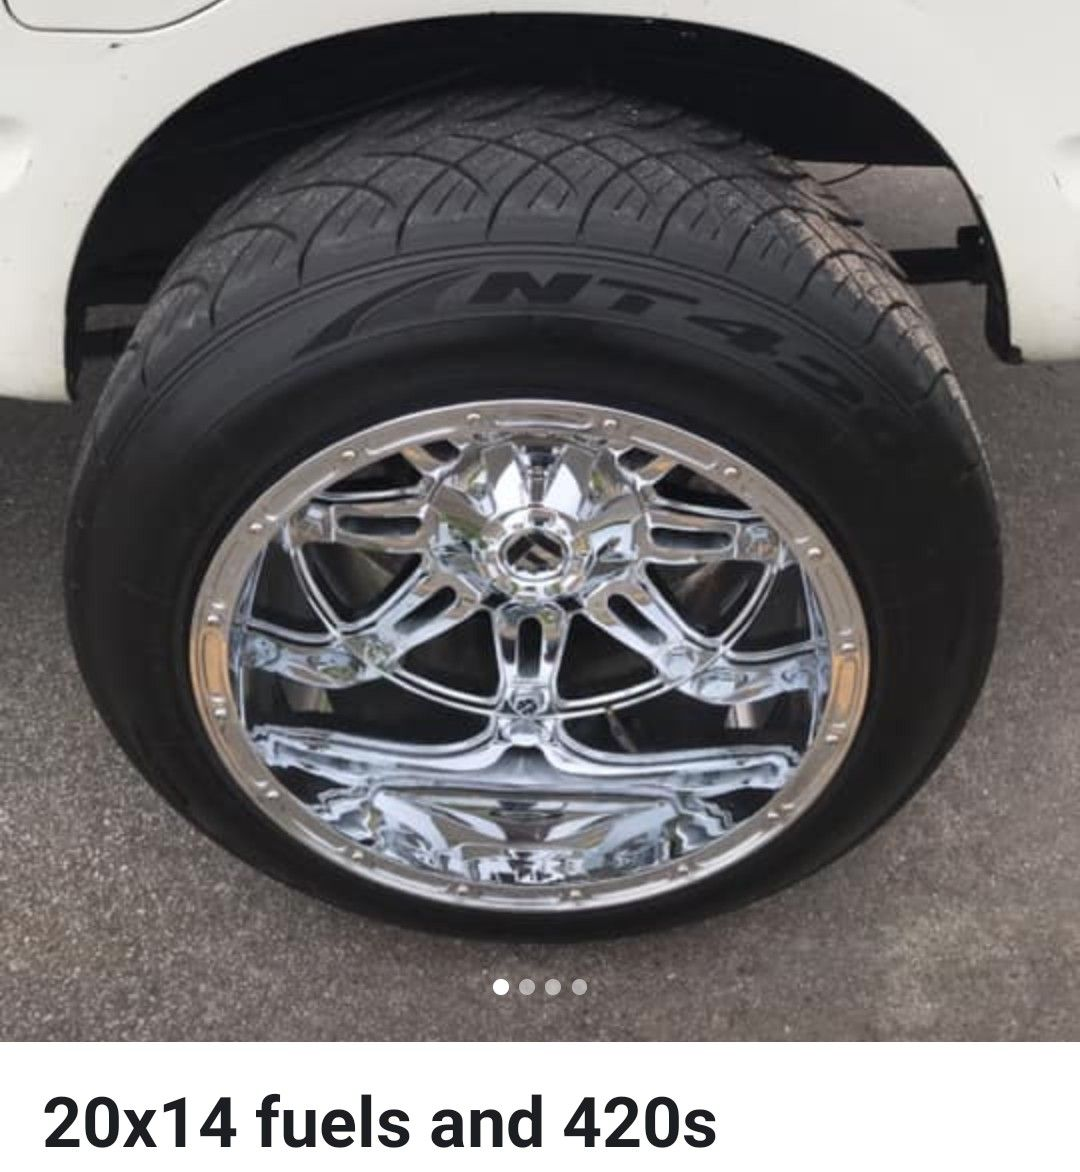 Pin by DBL king82 on guello Car, Car wheel, Vehicles